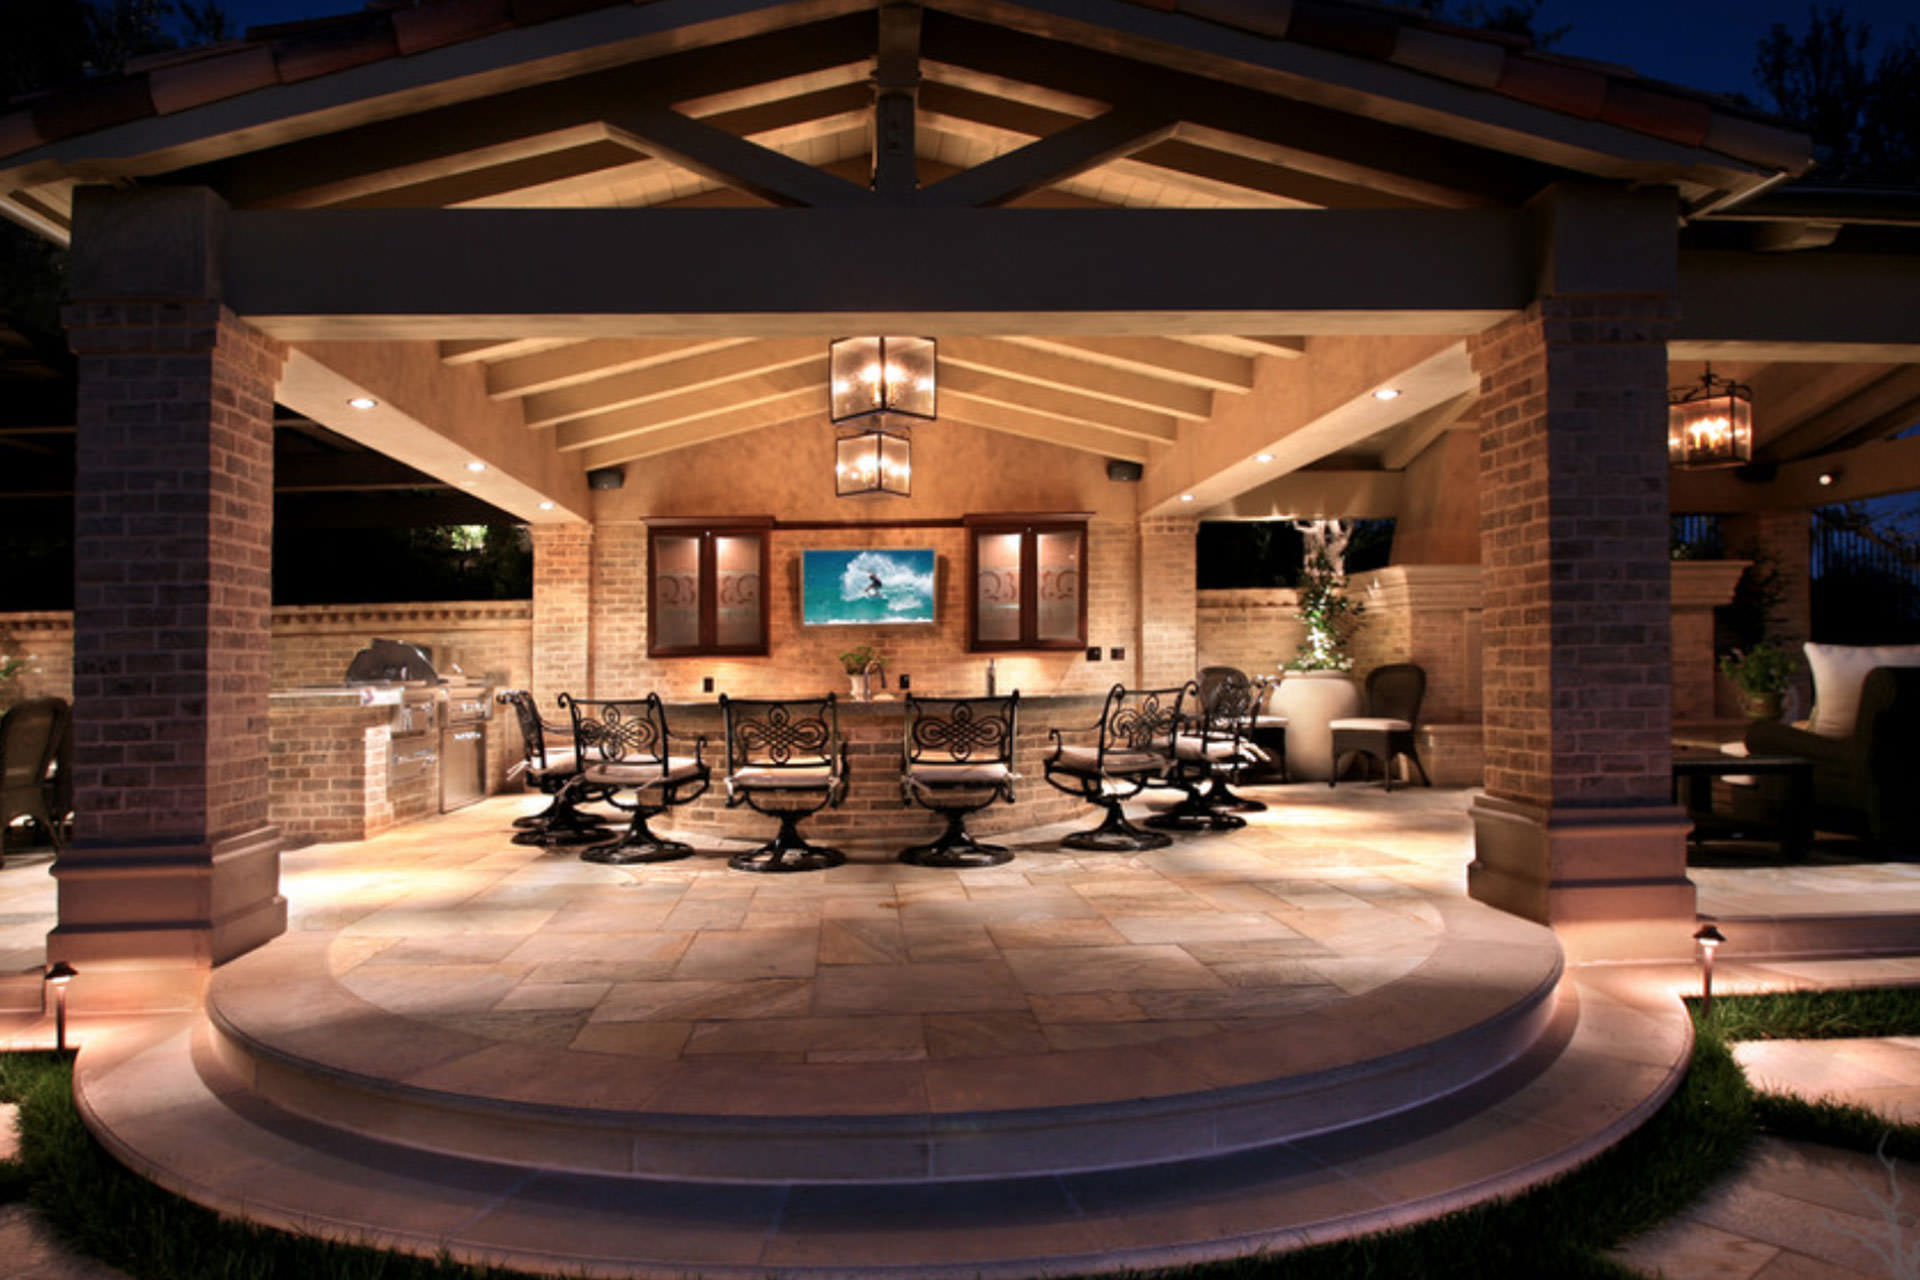 Creating a Focal Point in your Outdoor Space : focal point outdoor space entertainment area from www.shadefxcanopies.com size 1920 x 1280 jpeg 247kB